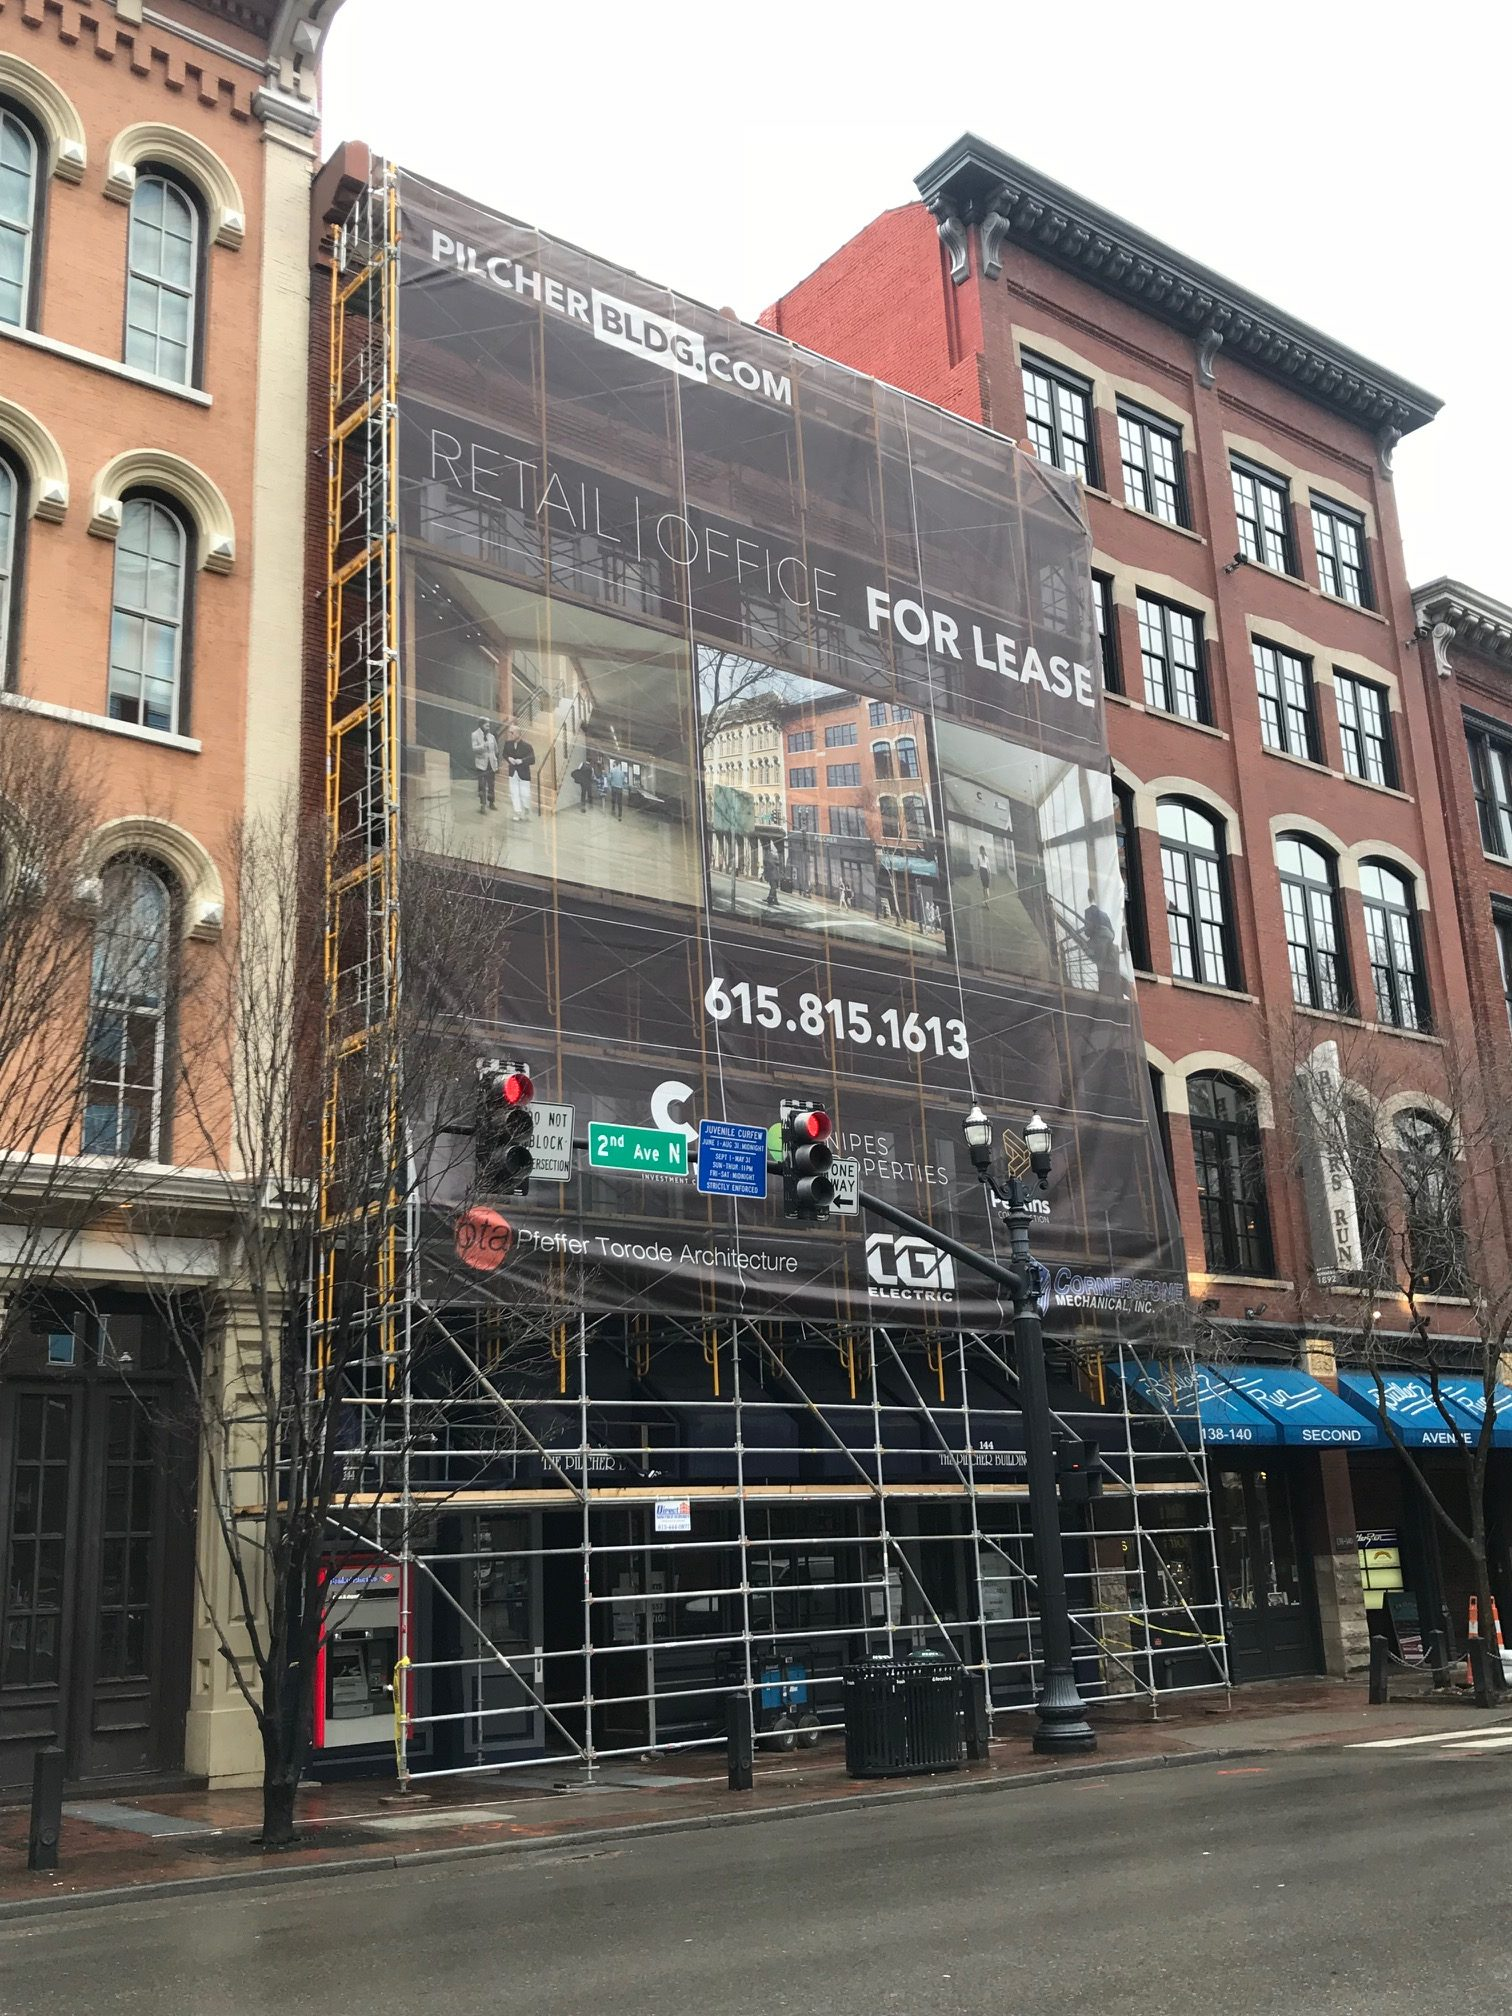 Completed 144 2nd Ave N scaffold project